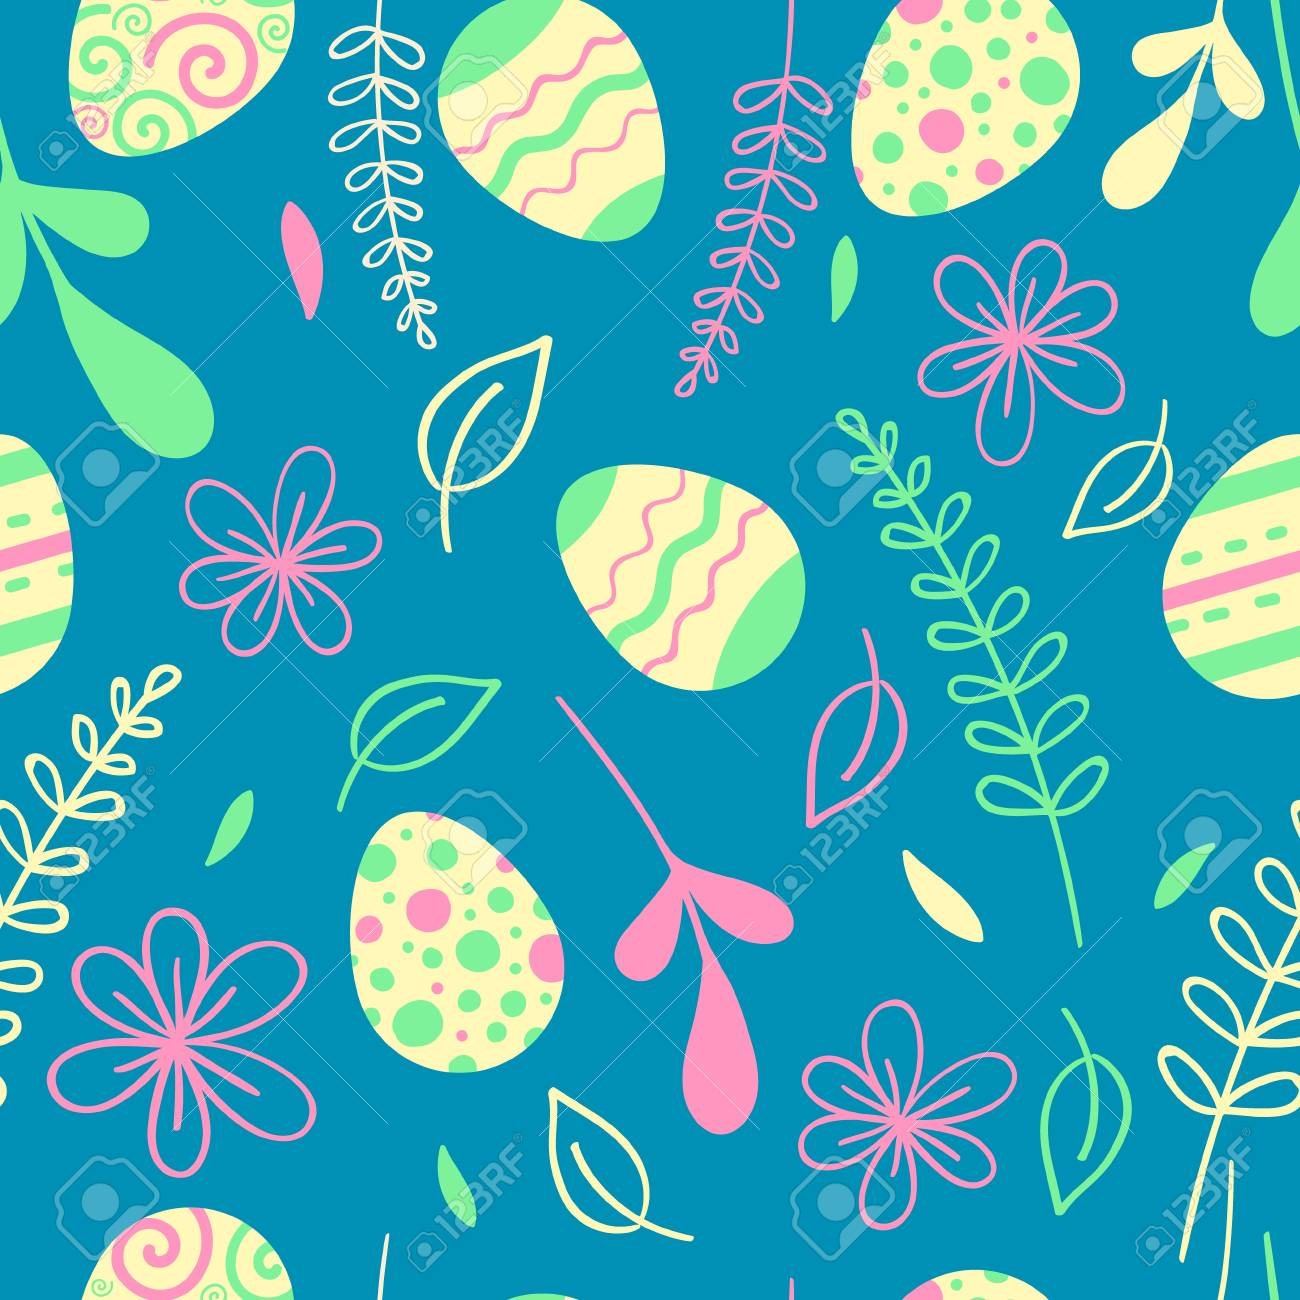 Easter seamless pattern with flowers. Egg hunt vector illustration - 97943781